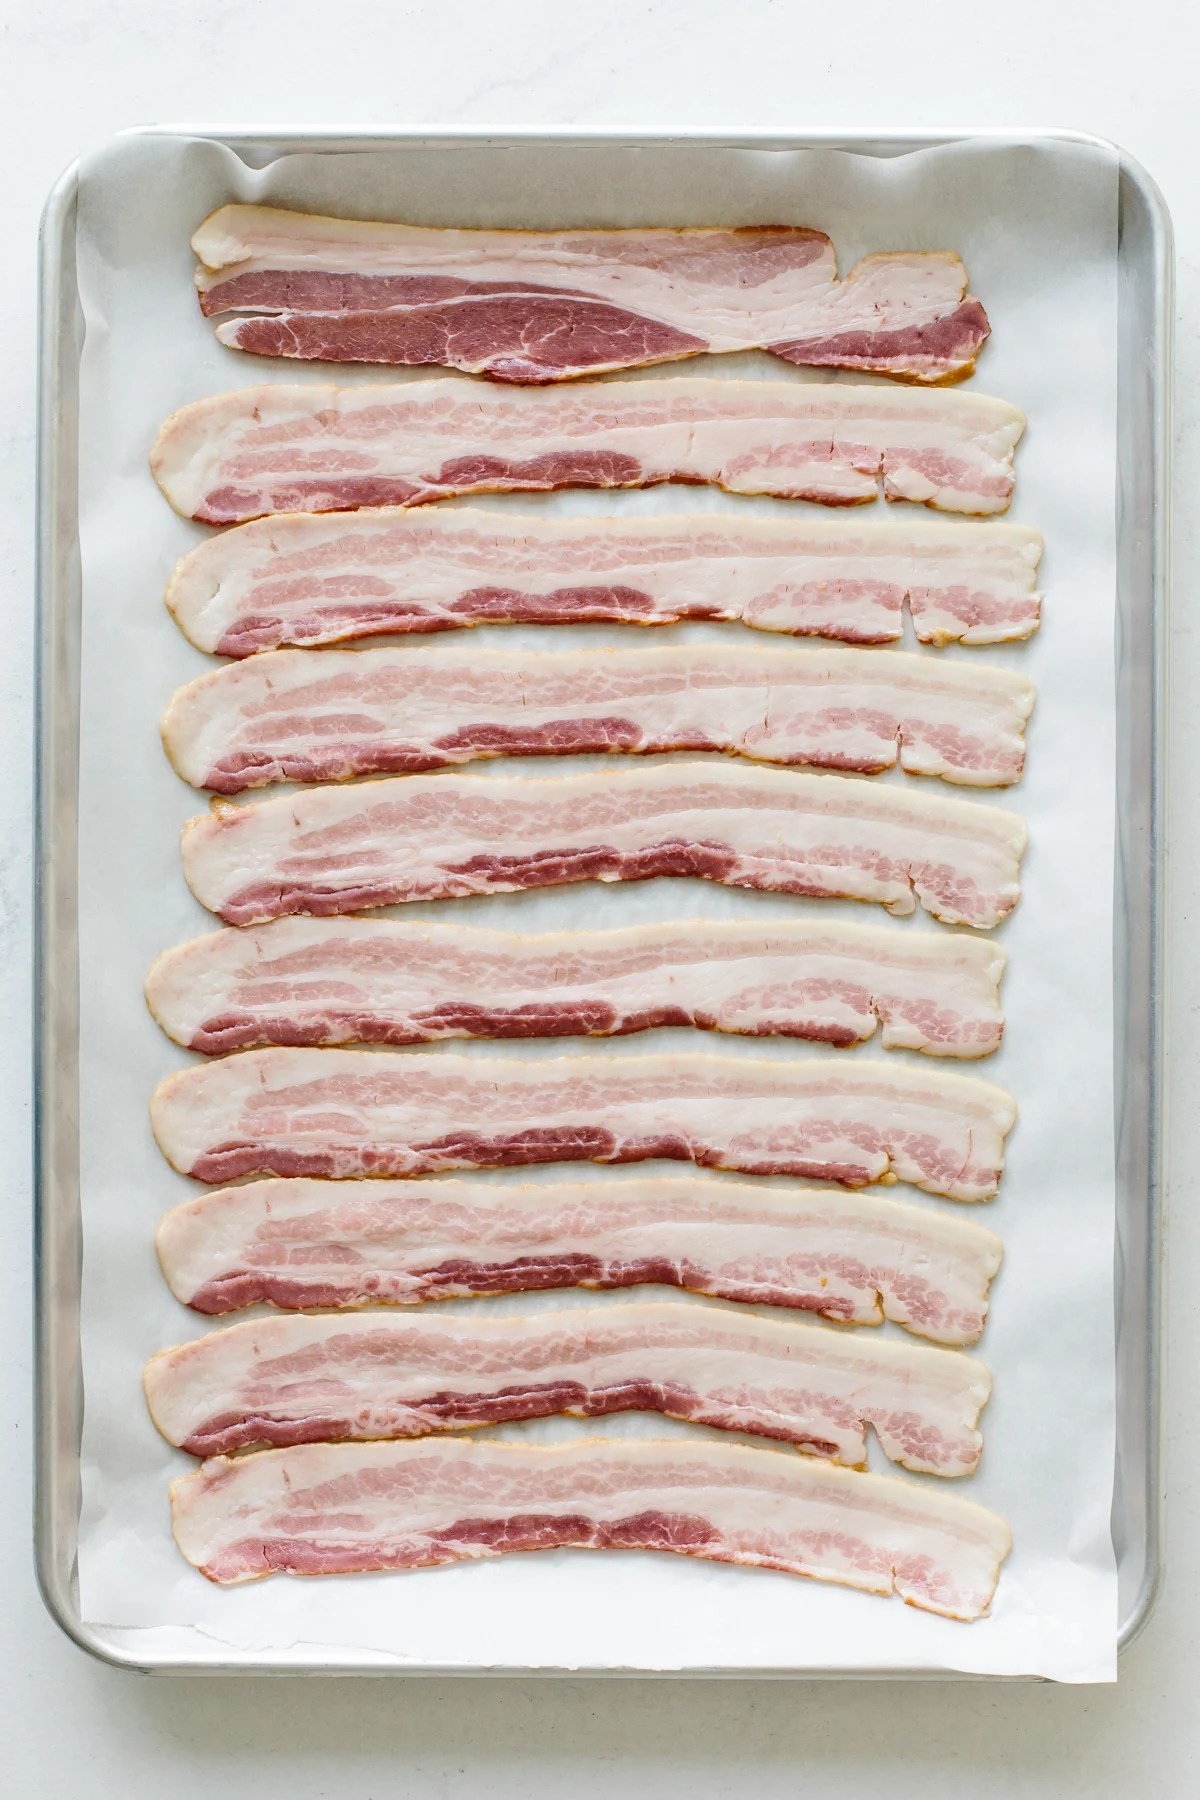 Raw bacon on a sheet tray.